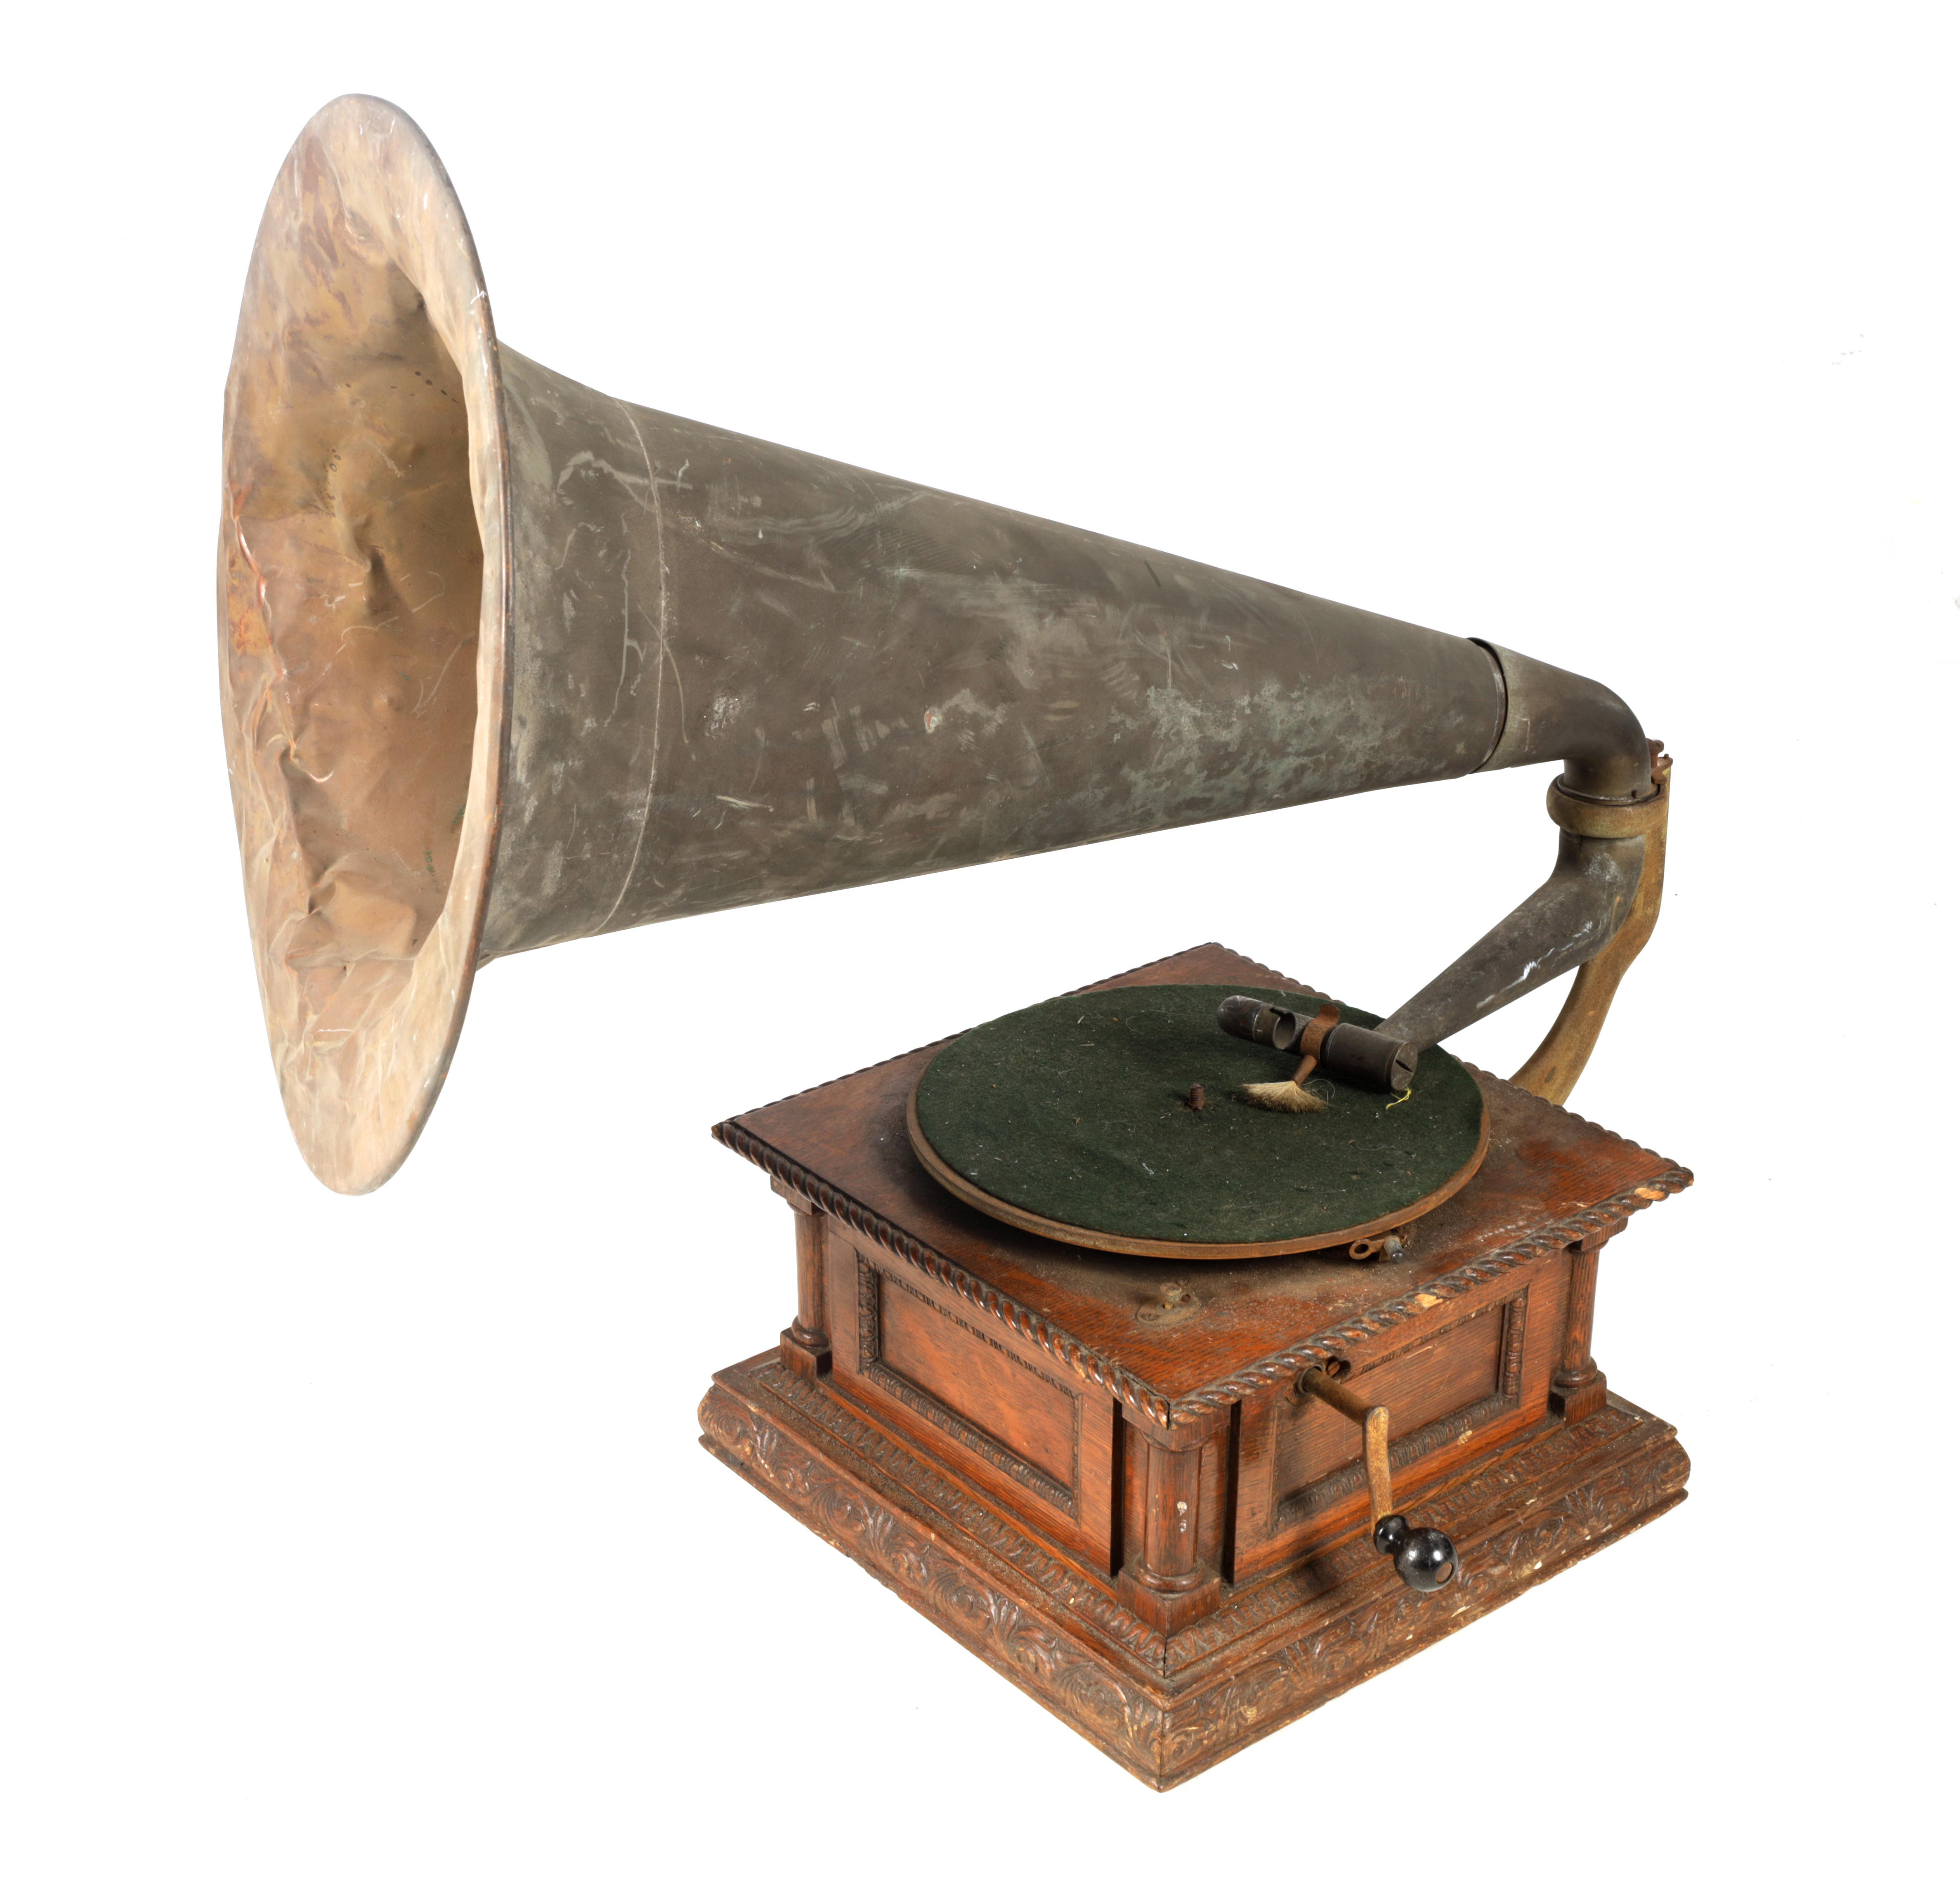 AN EARLY 20TH CENTURY OAK CASED HORN GRAMOPHONE, BY THE GRAMOPHONE & TYPEWRITER LTD having a